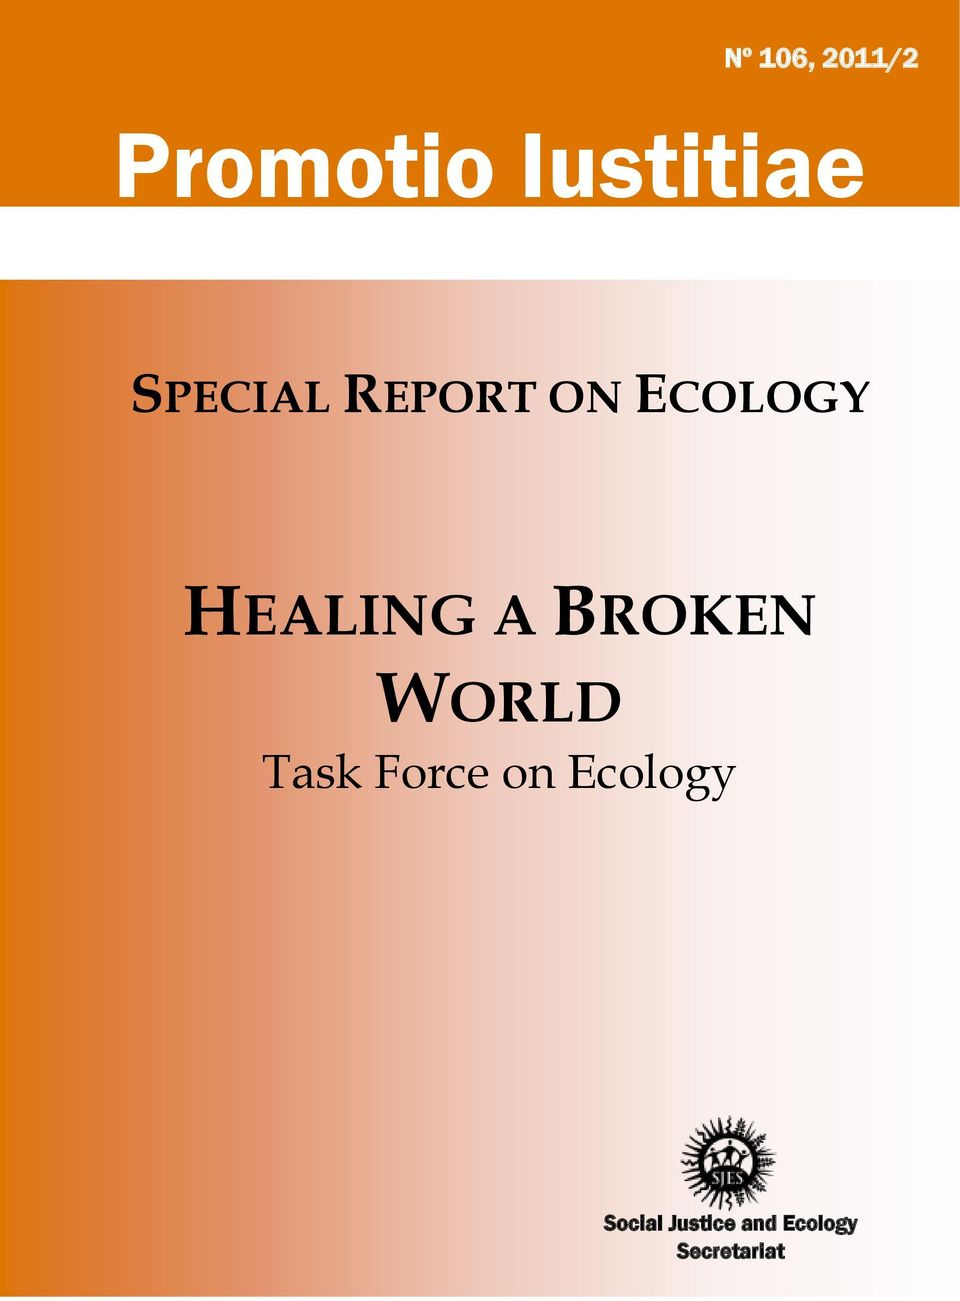 BROKEN WORLD Task Force on Ecology